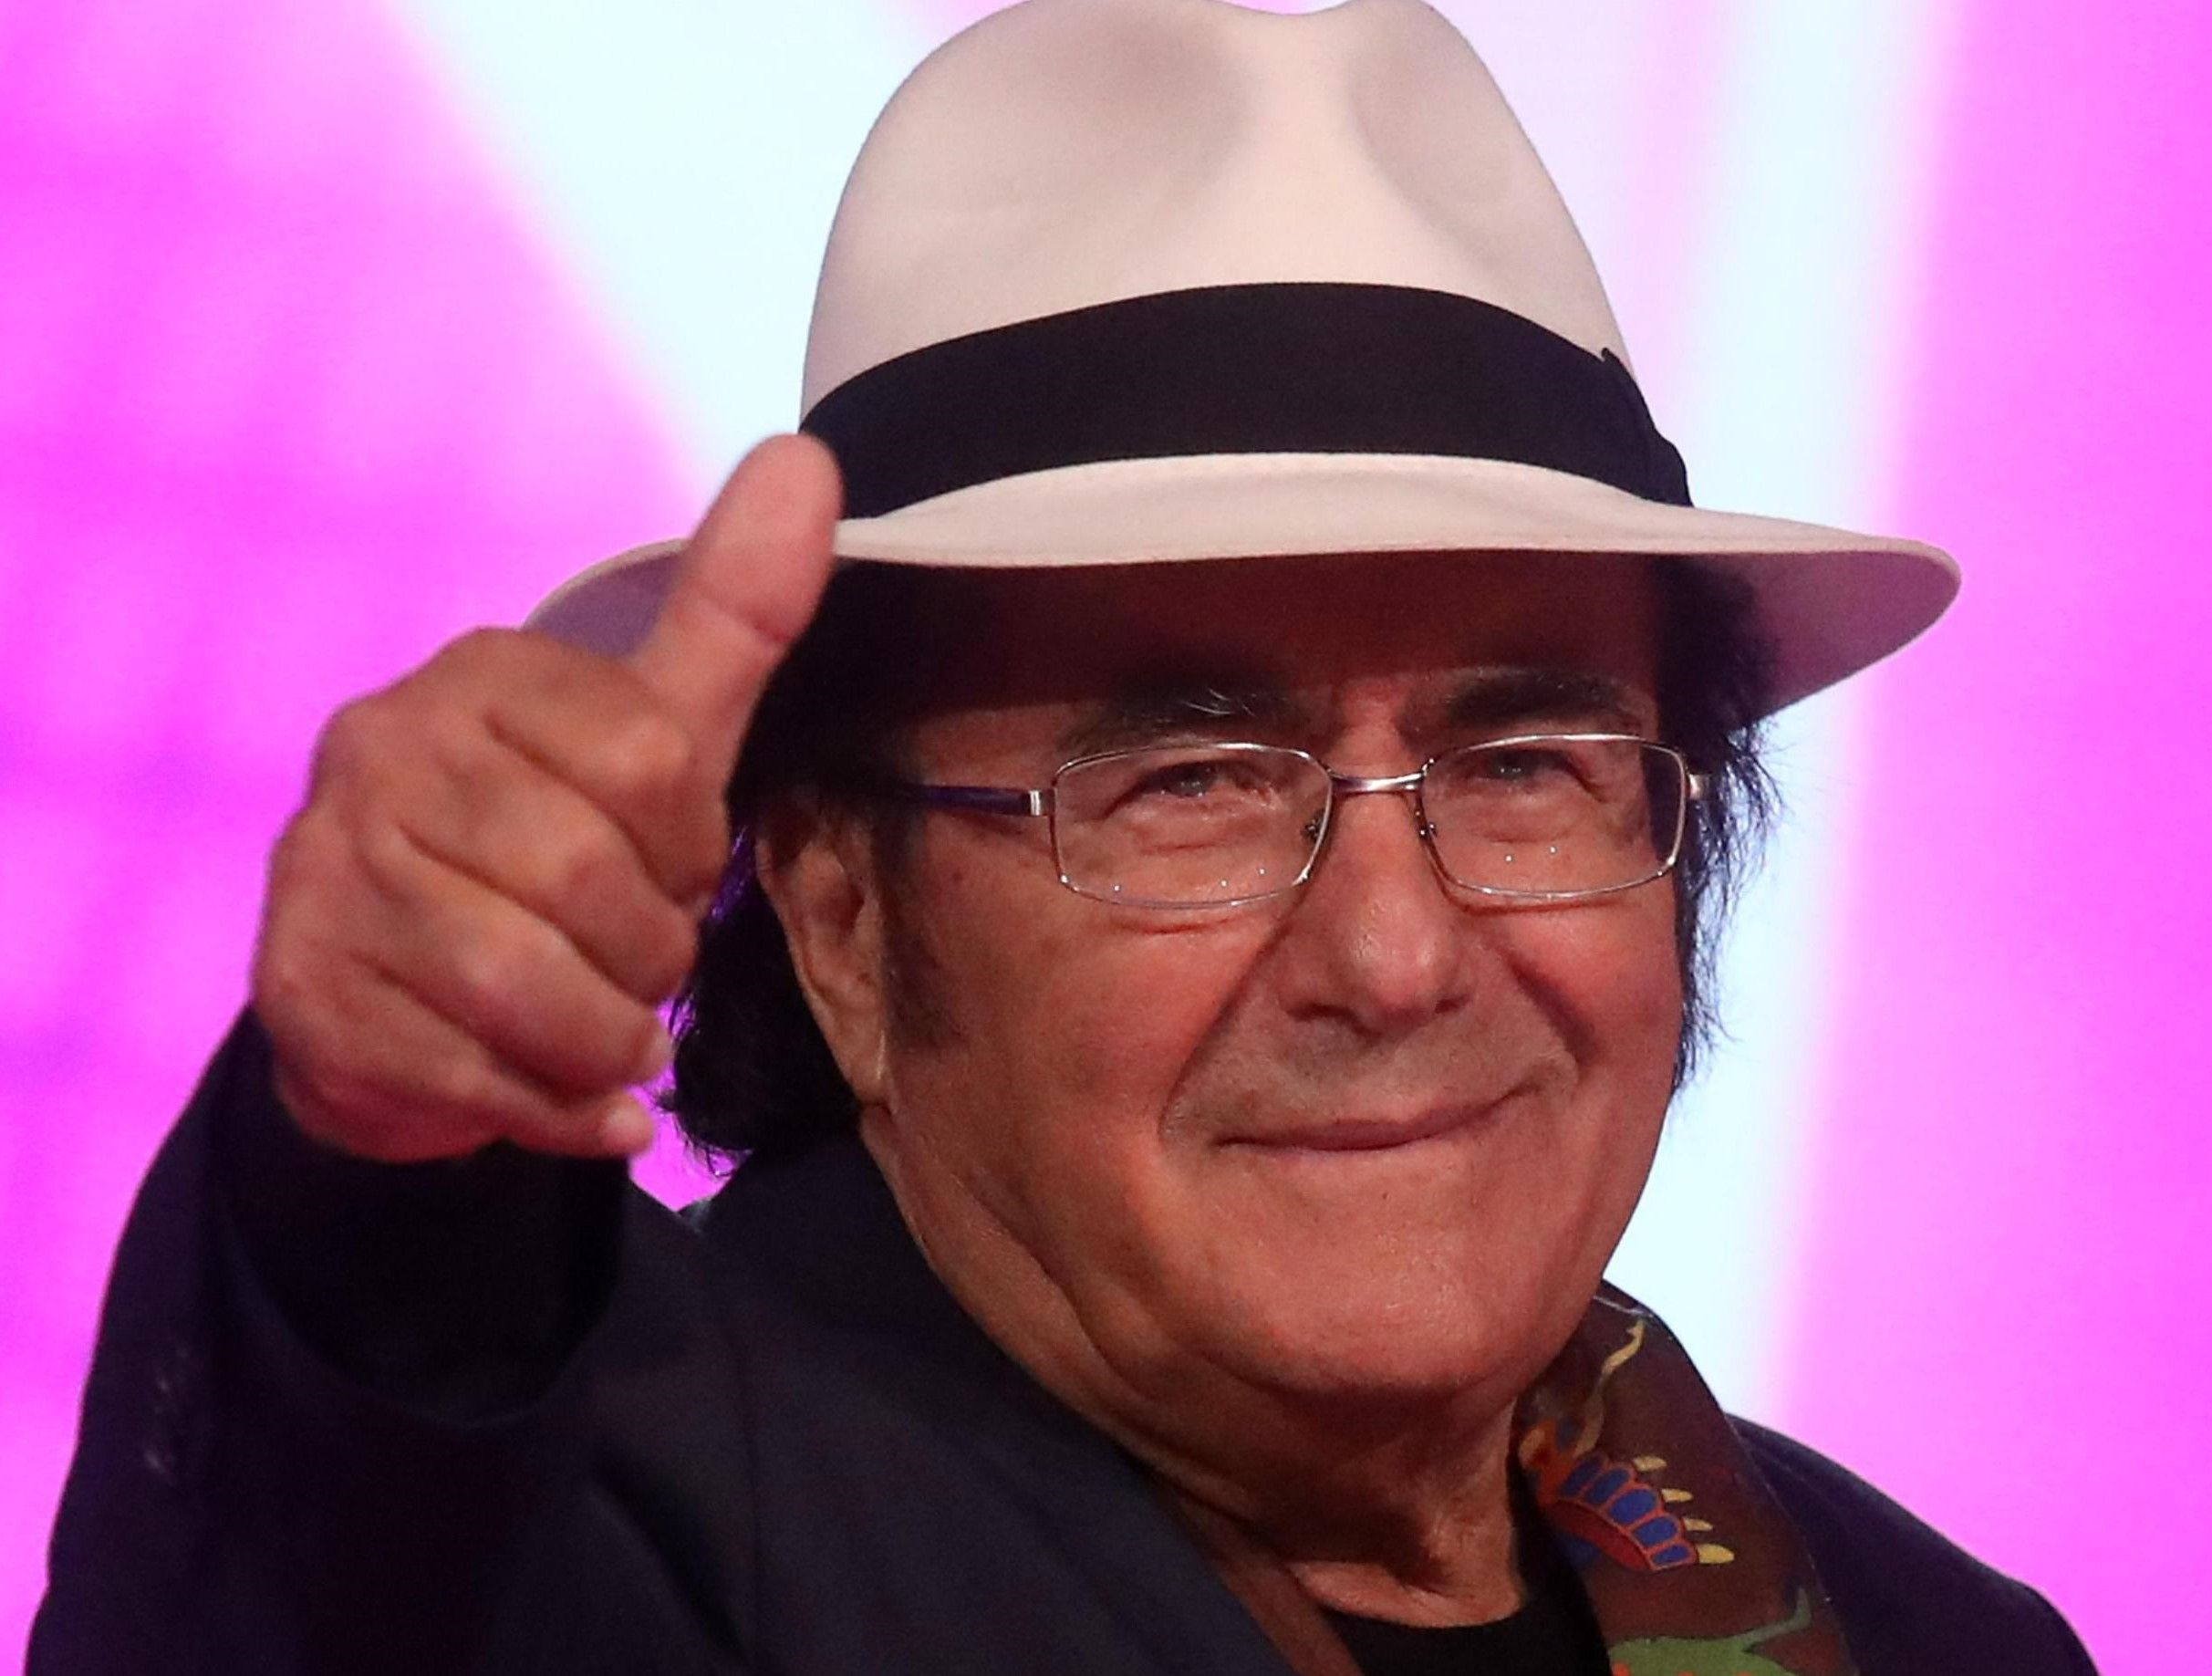 al bano carrisi the voice 2018